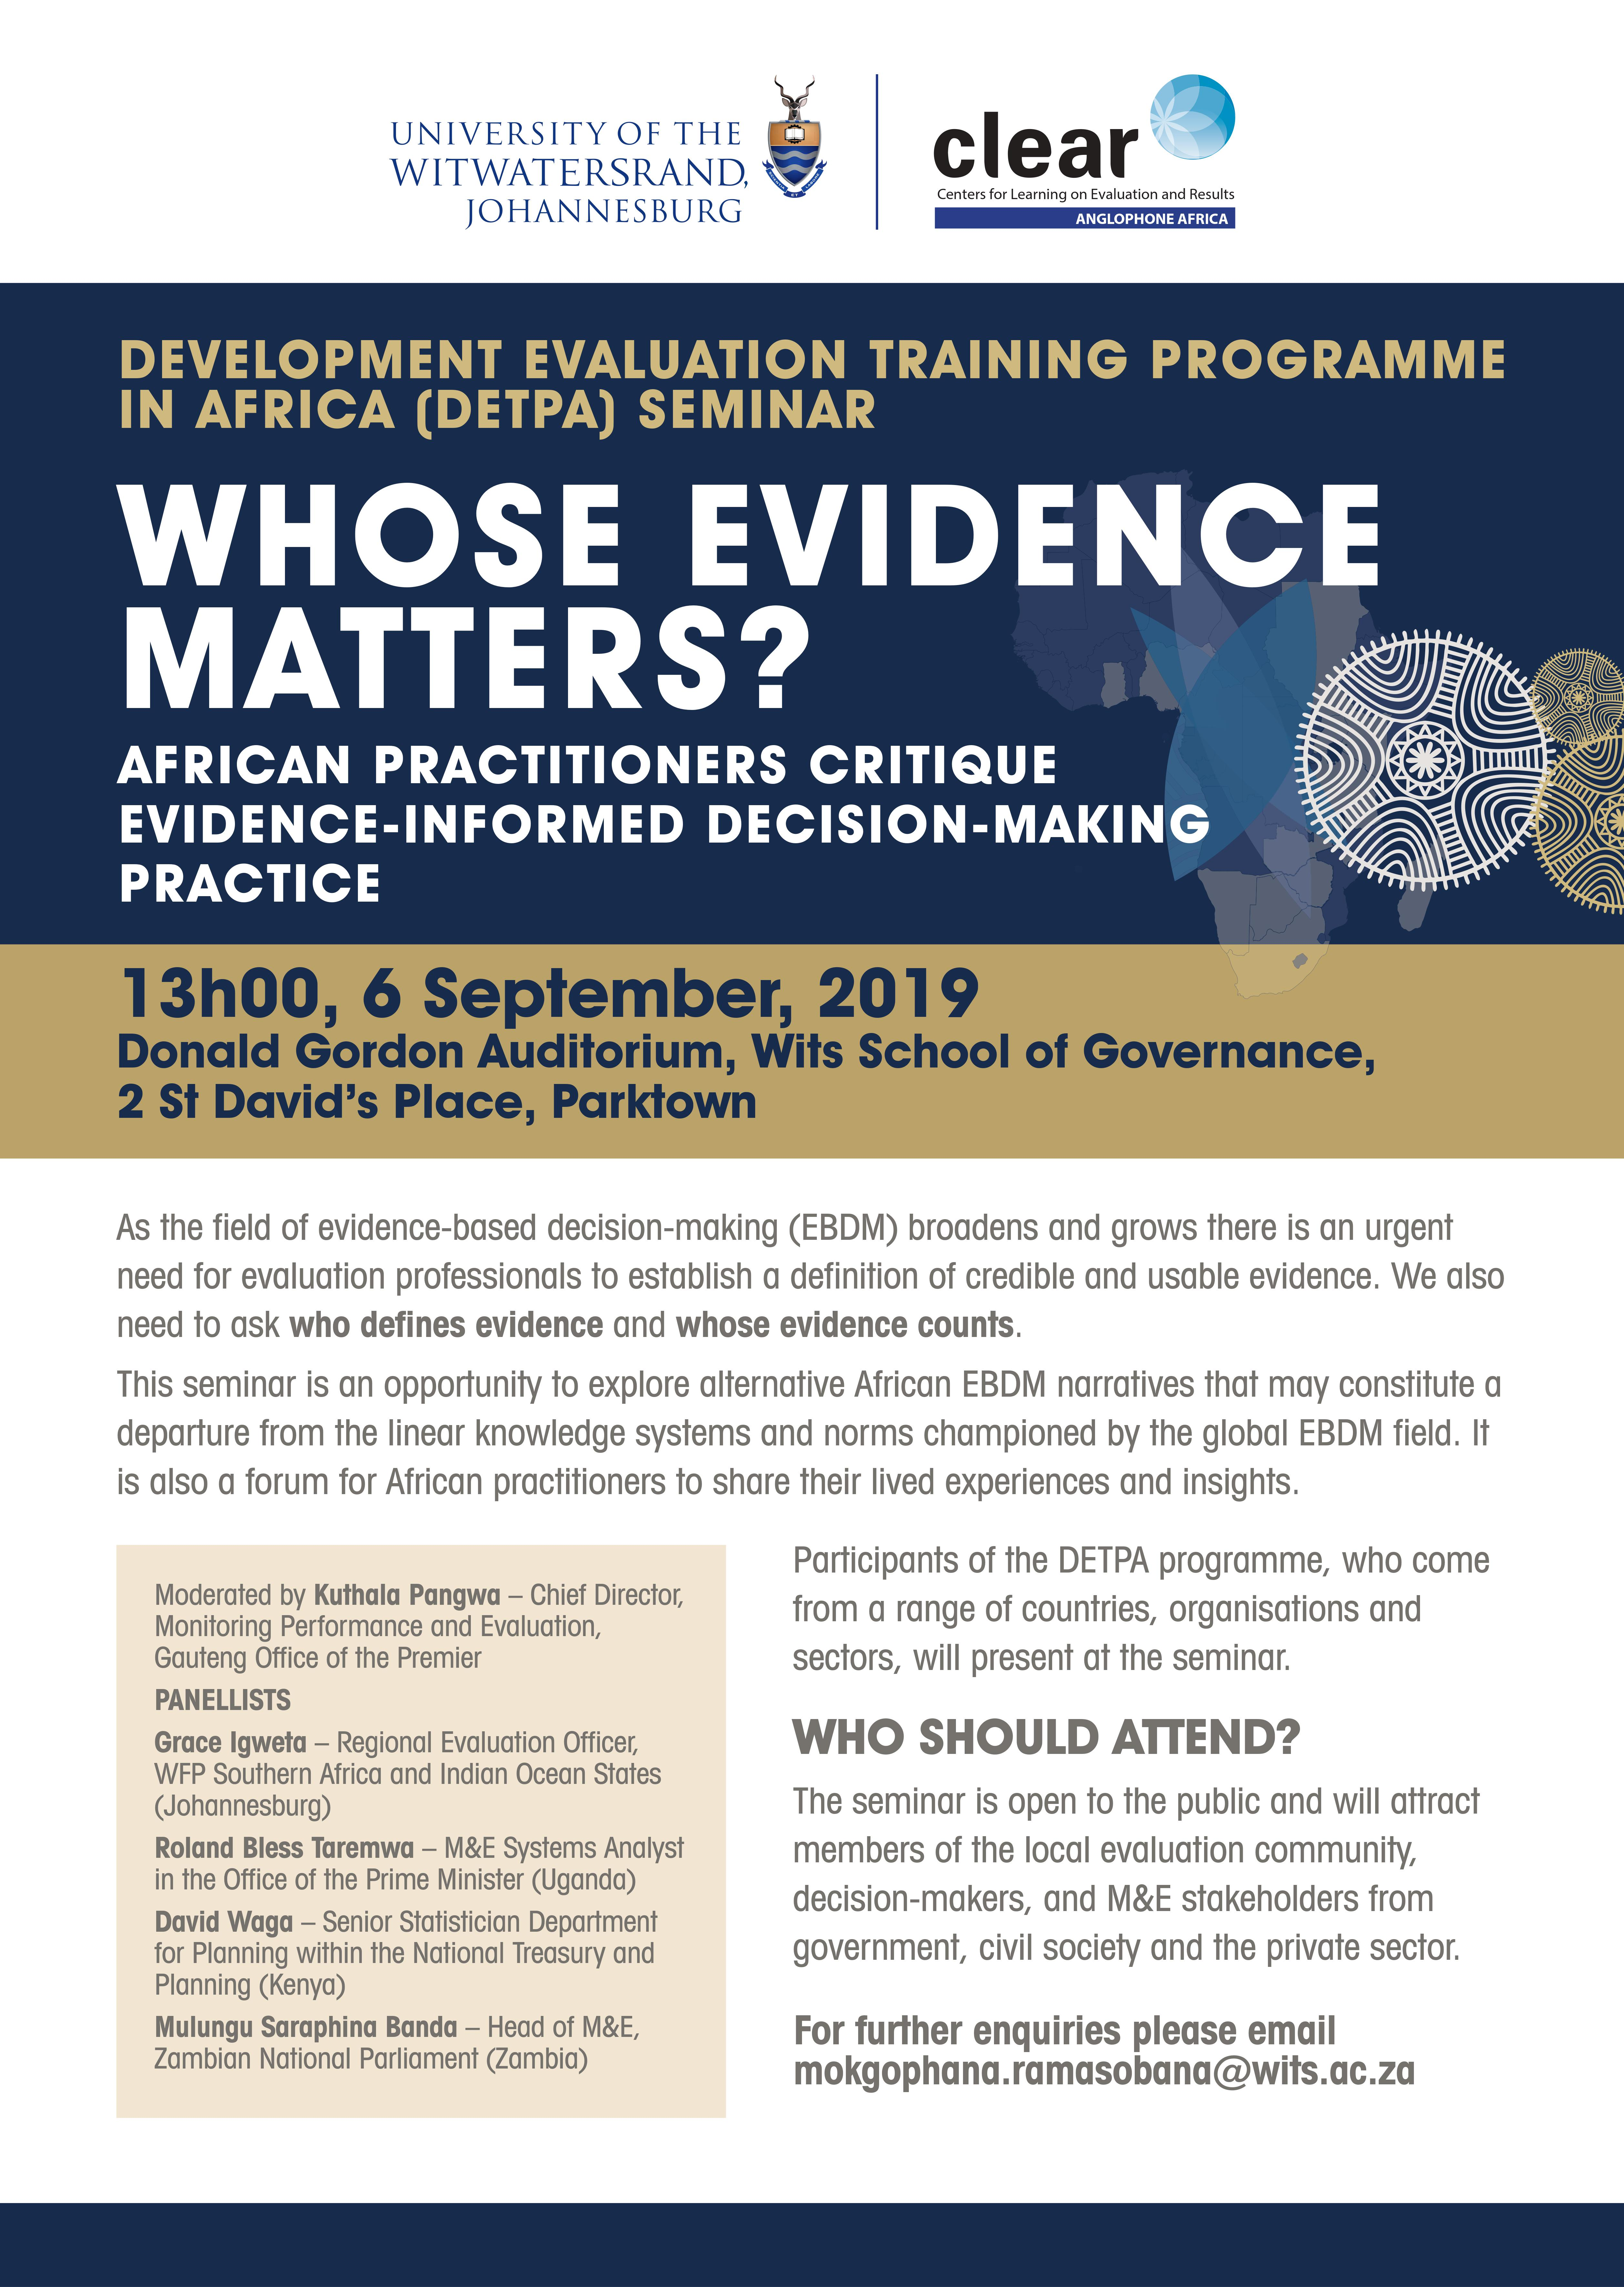 Whose Evidence Matters?